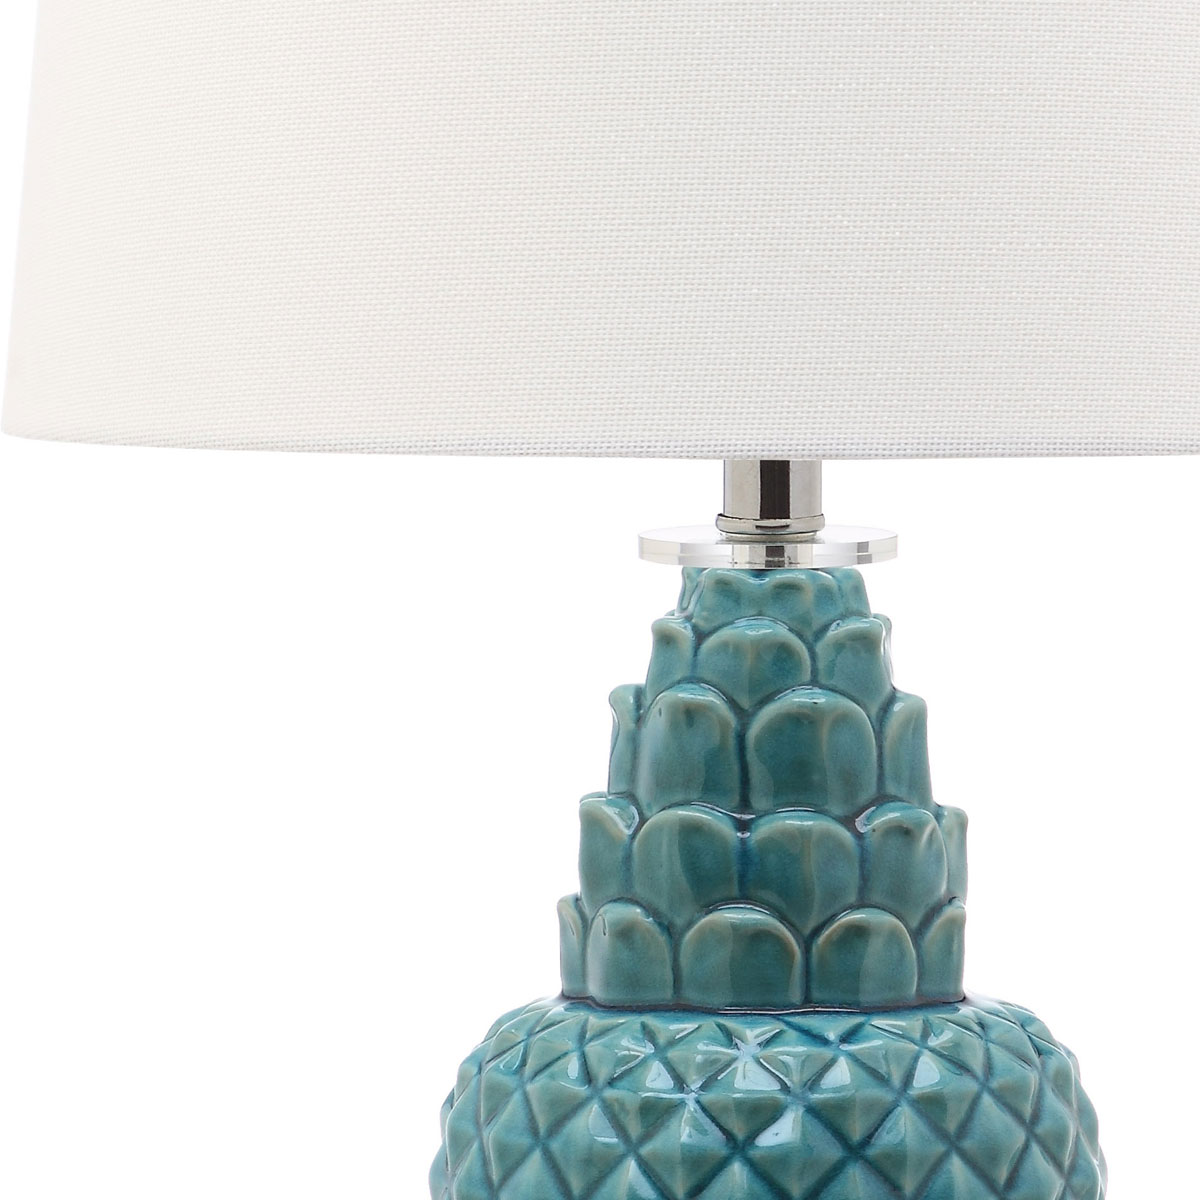 Lit4246b set2 table lamps lighting by safavieh blakely 28 inch h teal table lamp lit4246b set2 mozeypictures Image collections